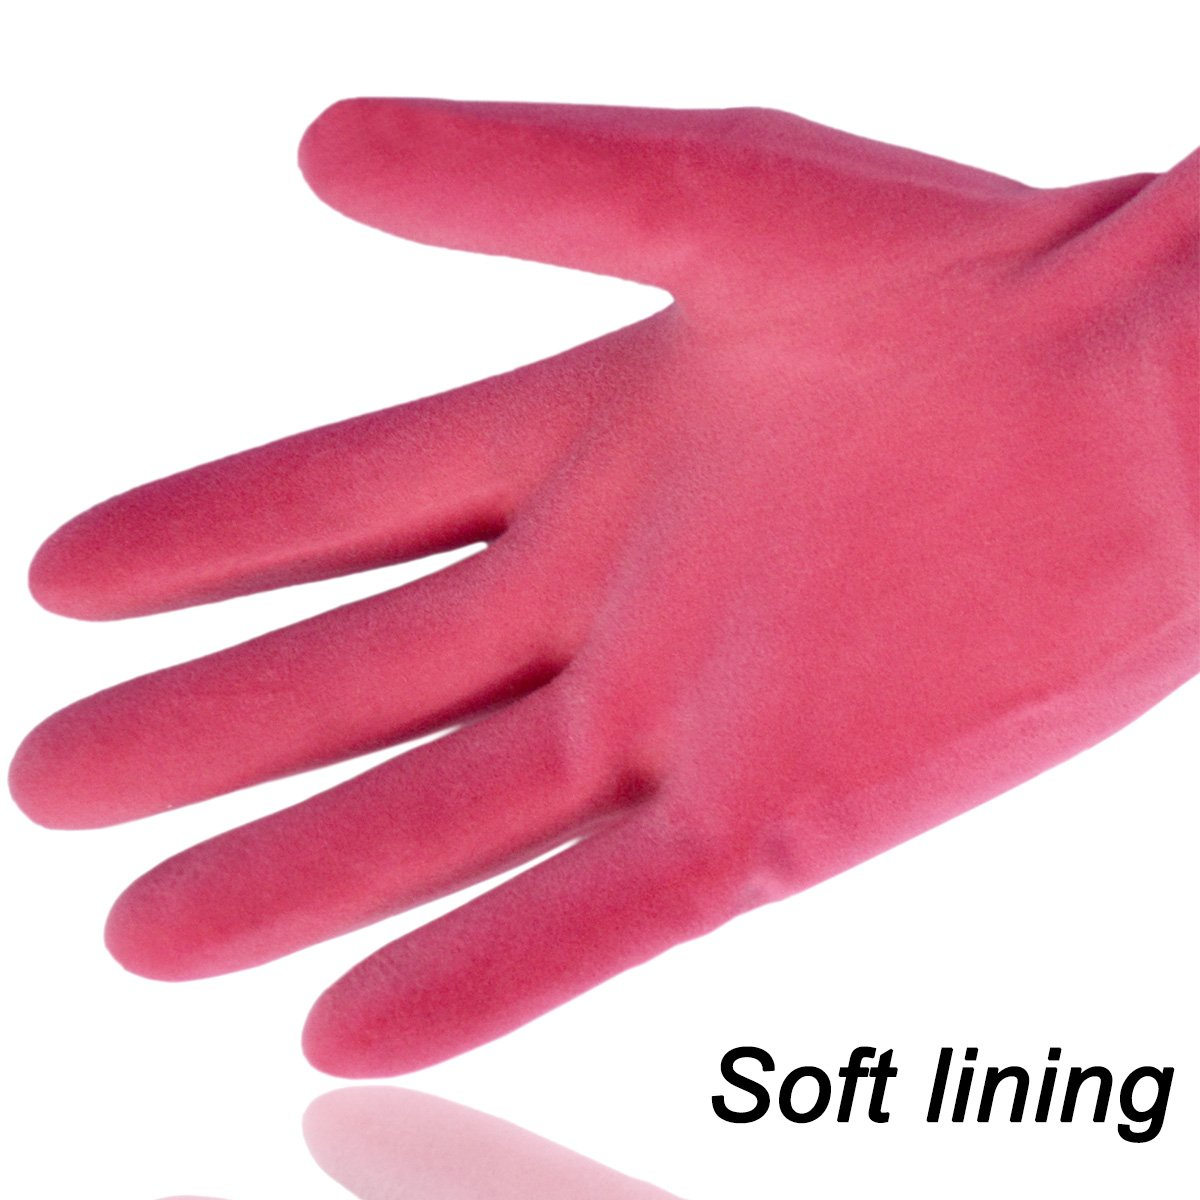 Rubber Household Gloves, Reusable Long Latex Kitchen Cleaning Gloves, with Cotton Lining (Pink 2 Pairs) by Cleanbear (Image #3)